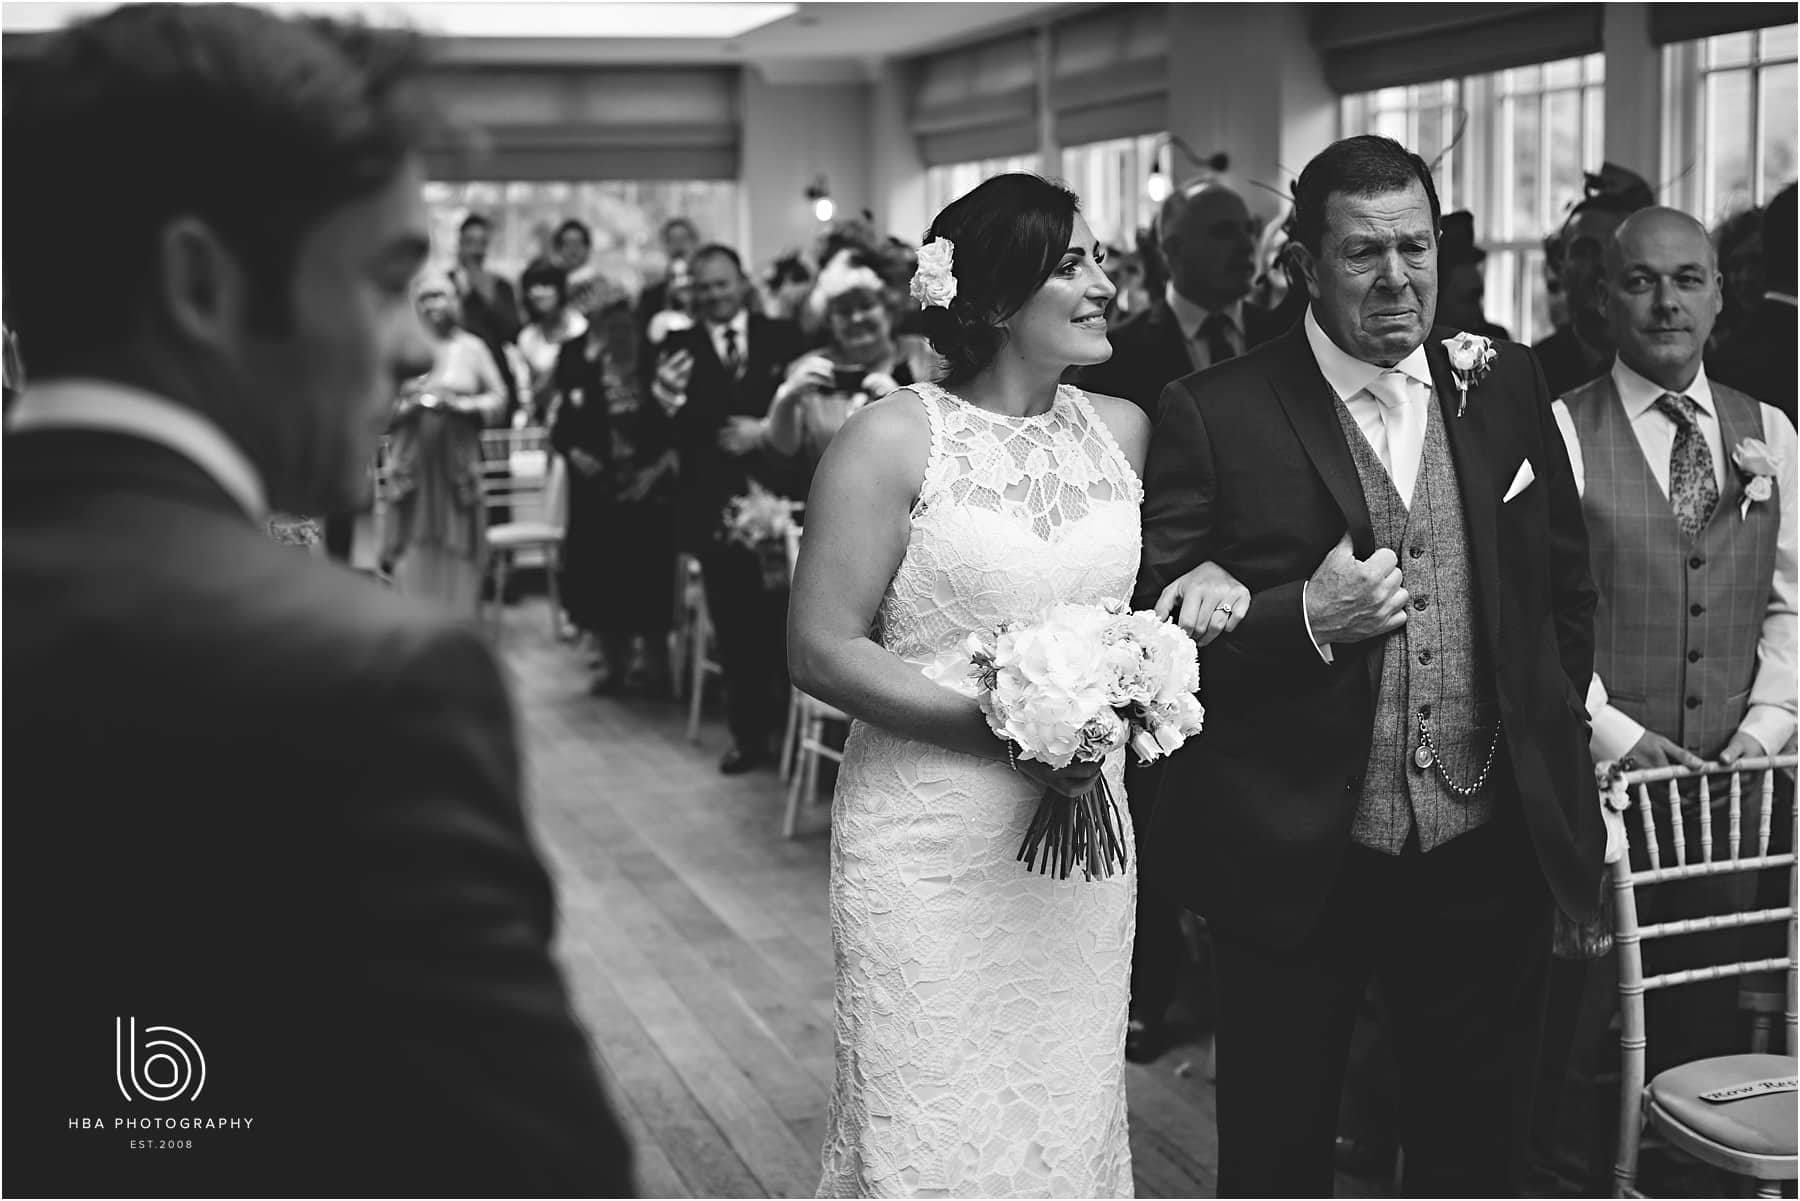 the bride walking down the aisle with her dad